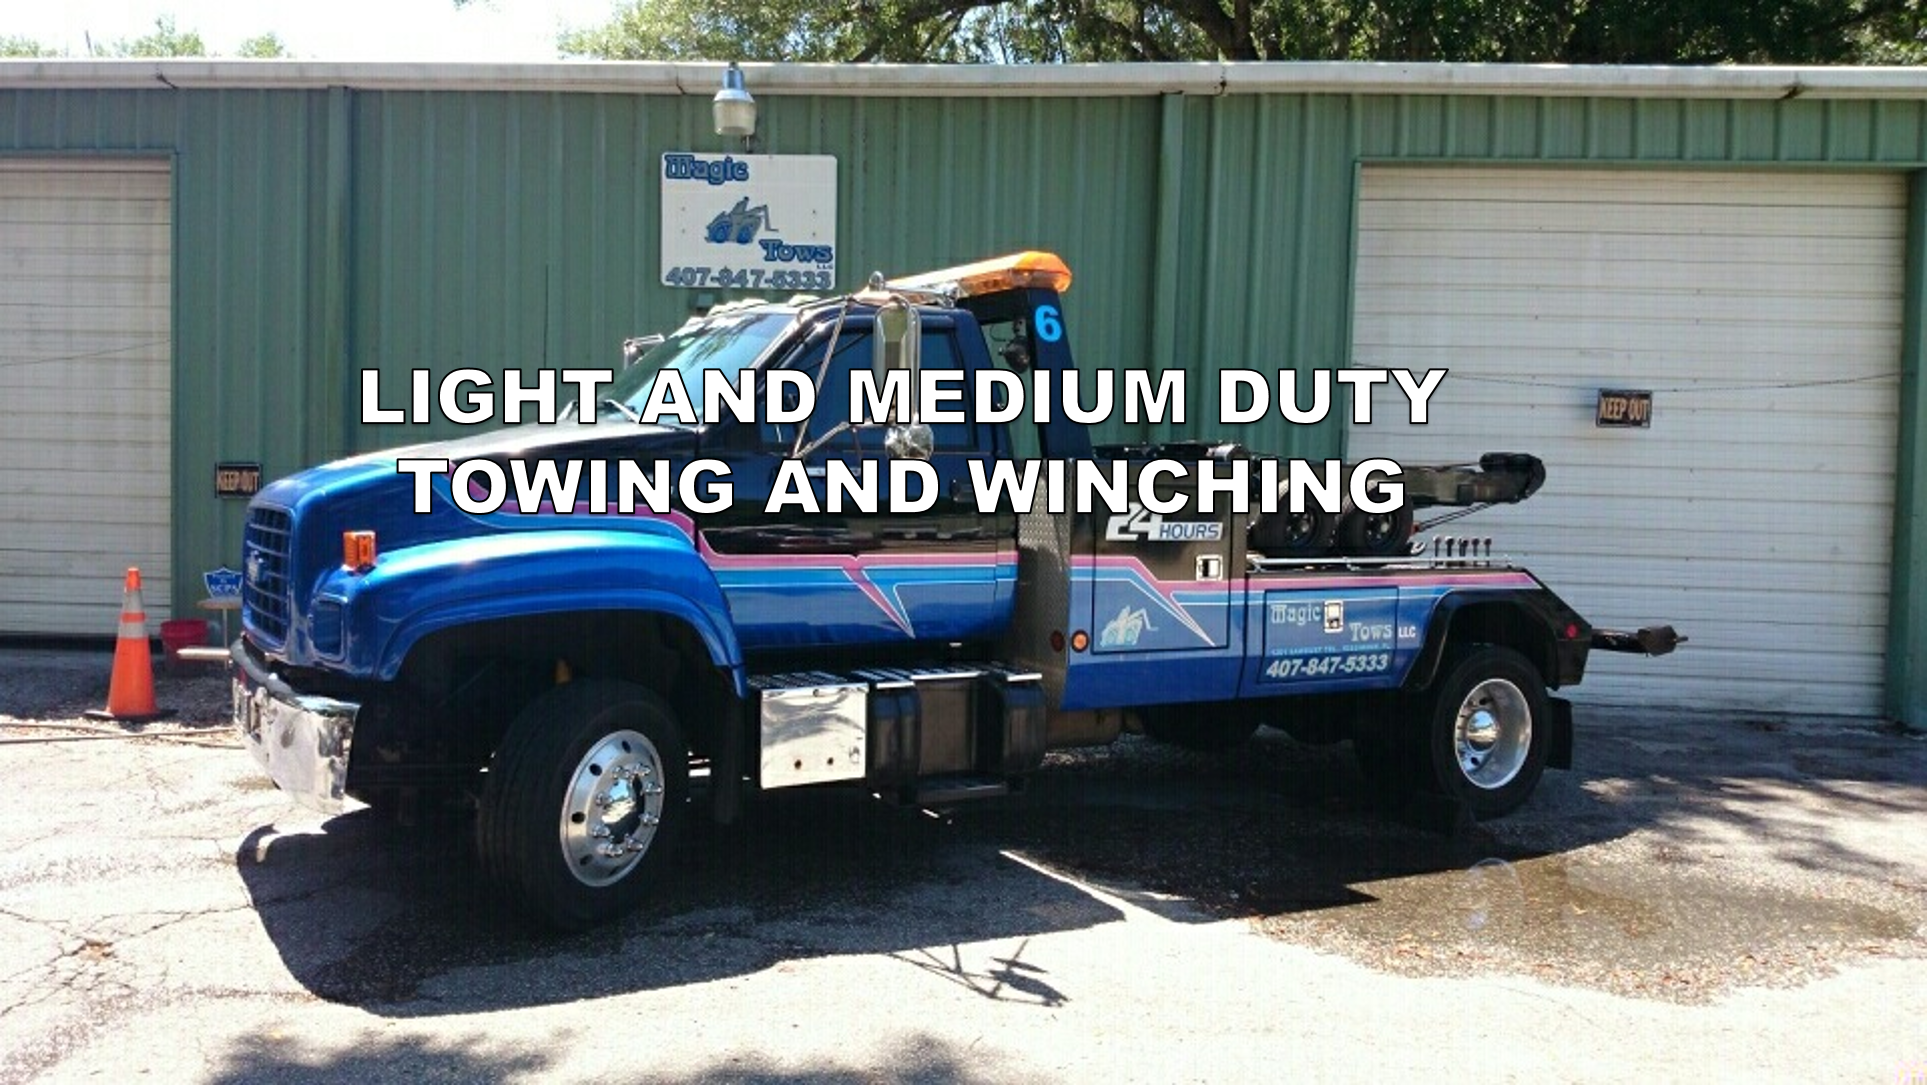 C&S Towing